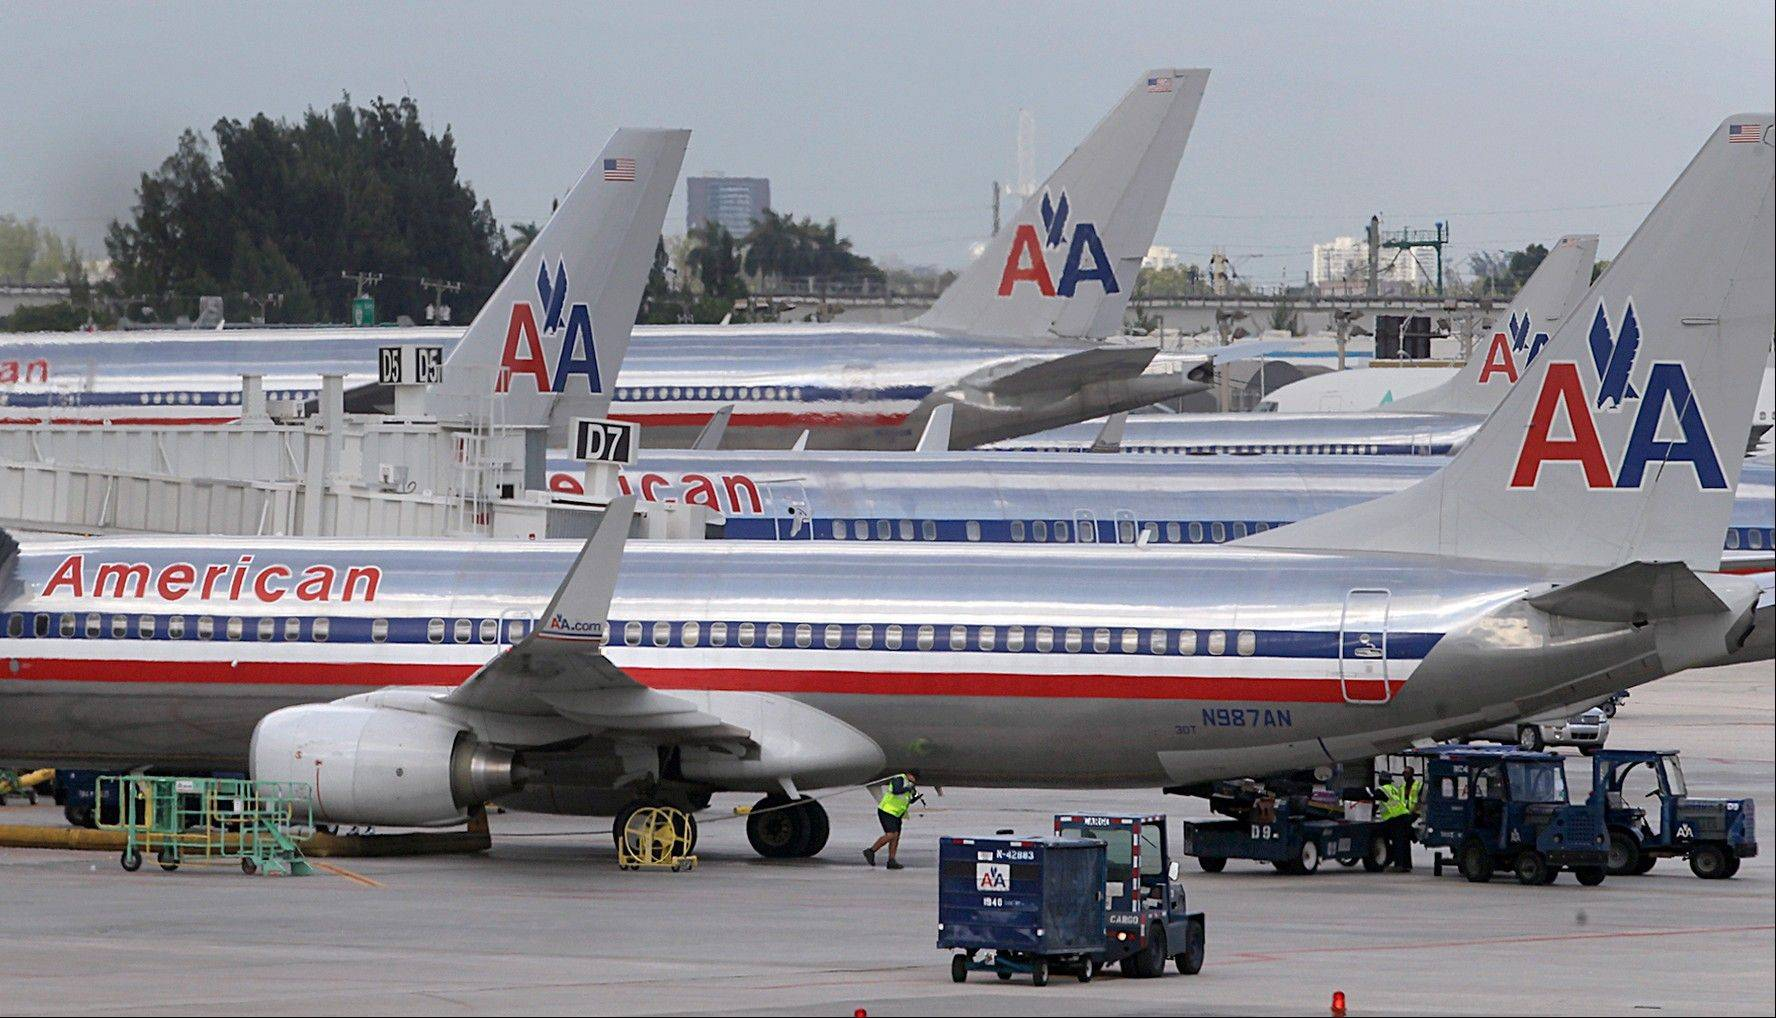 American Airlines jets are parked at the various gates of Miami International Airport on Tuesday. In addition to sending layoff warning notices to more than 11,000 employees this week, the airline has canceled hundreds of flights this week because of pilot absences.